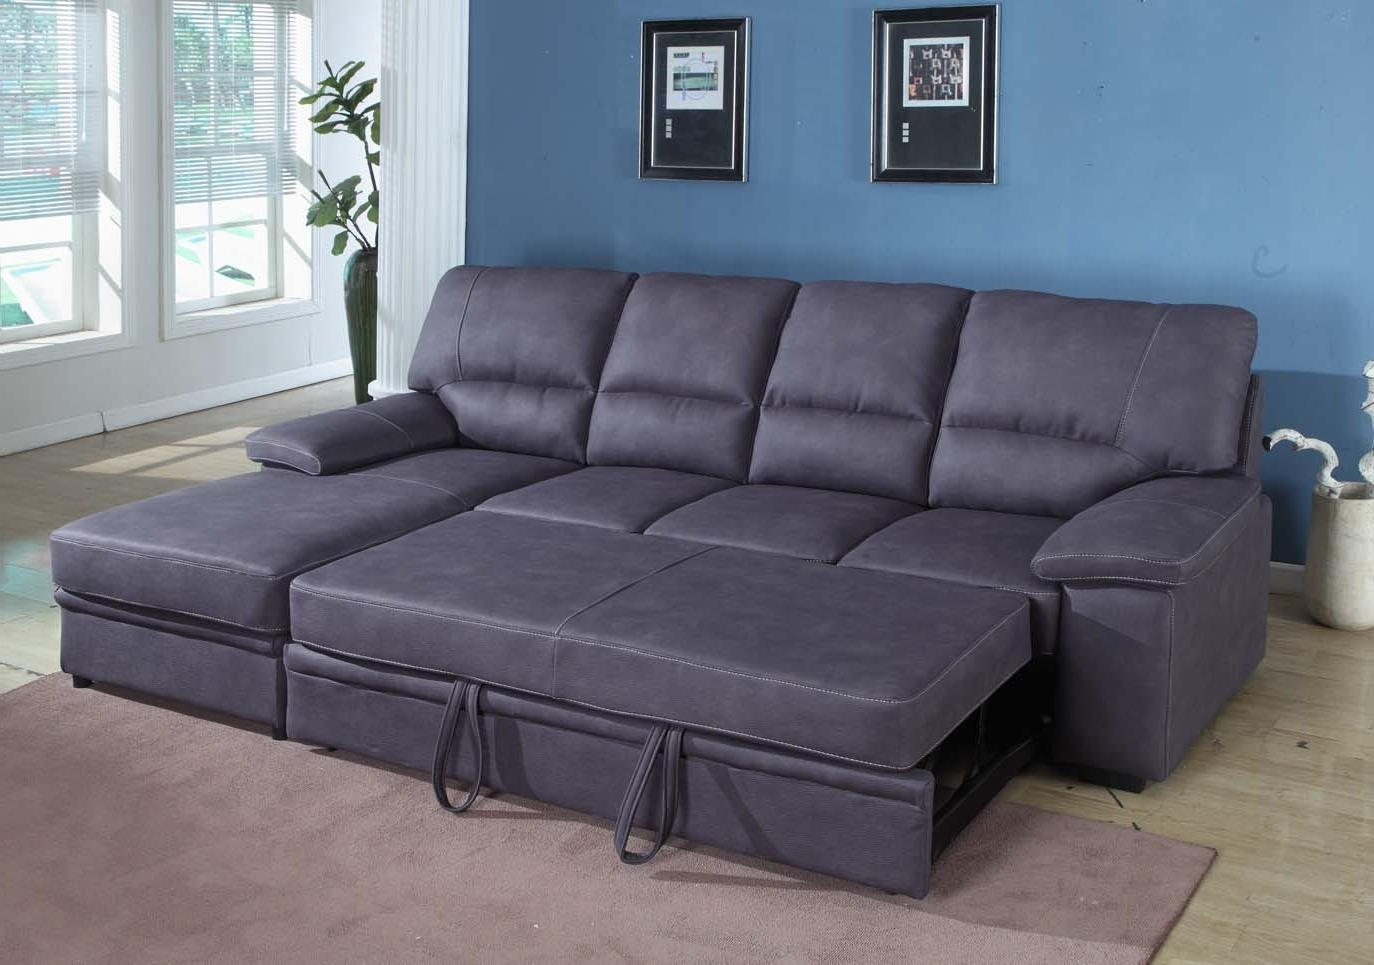 Grey Sleeper Sectional Sofa (View 9 of 15)